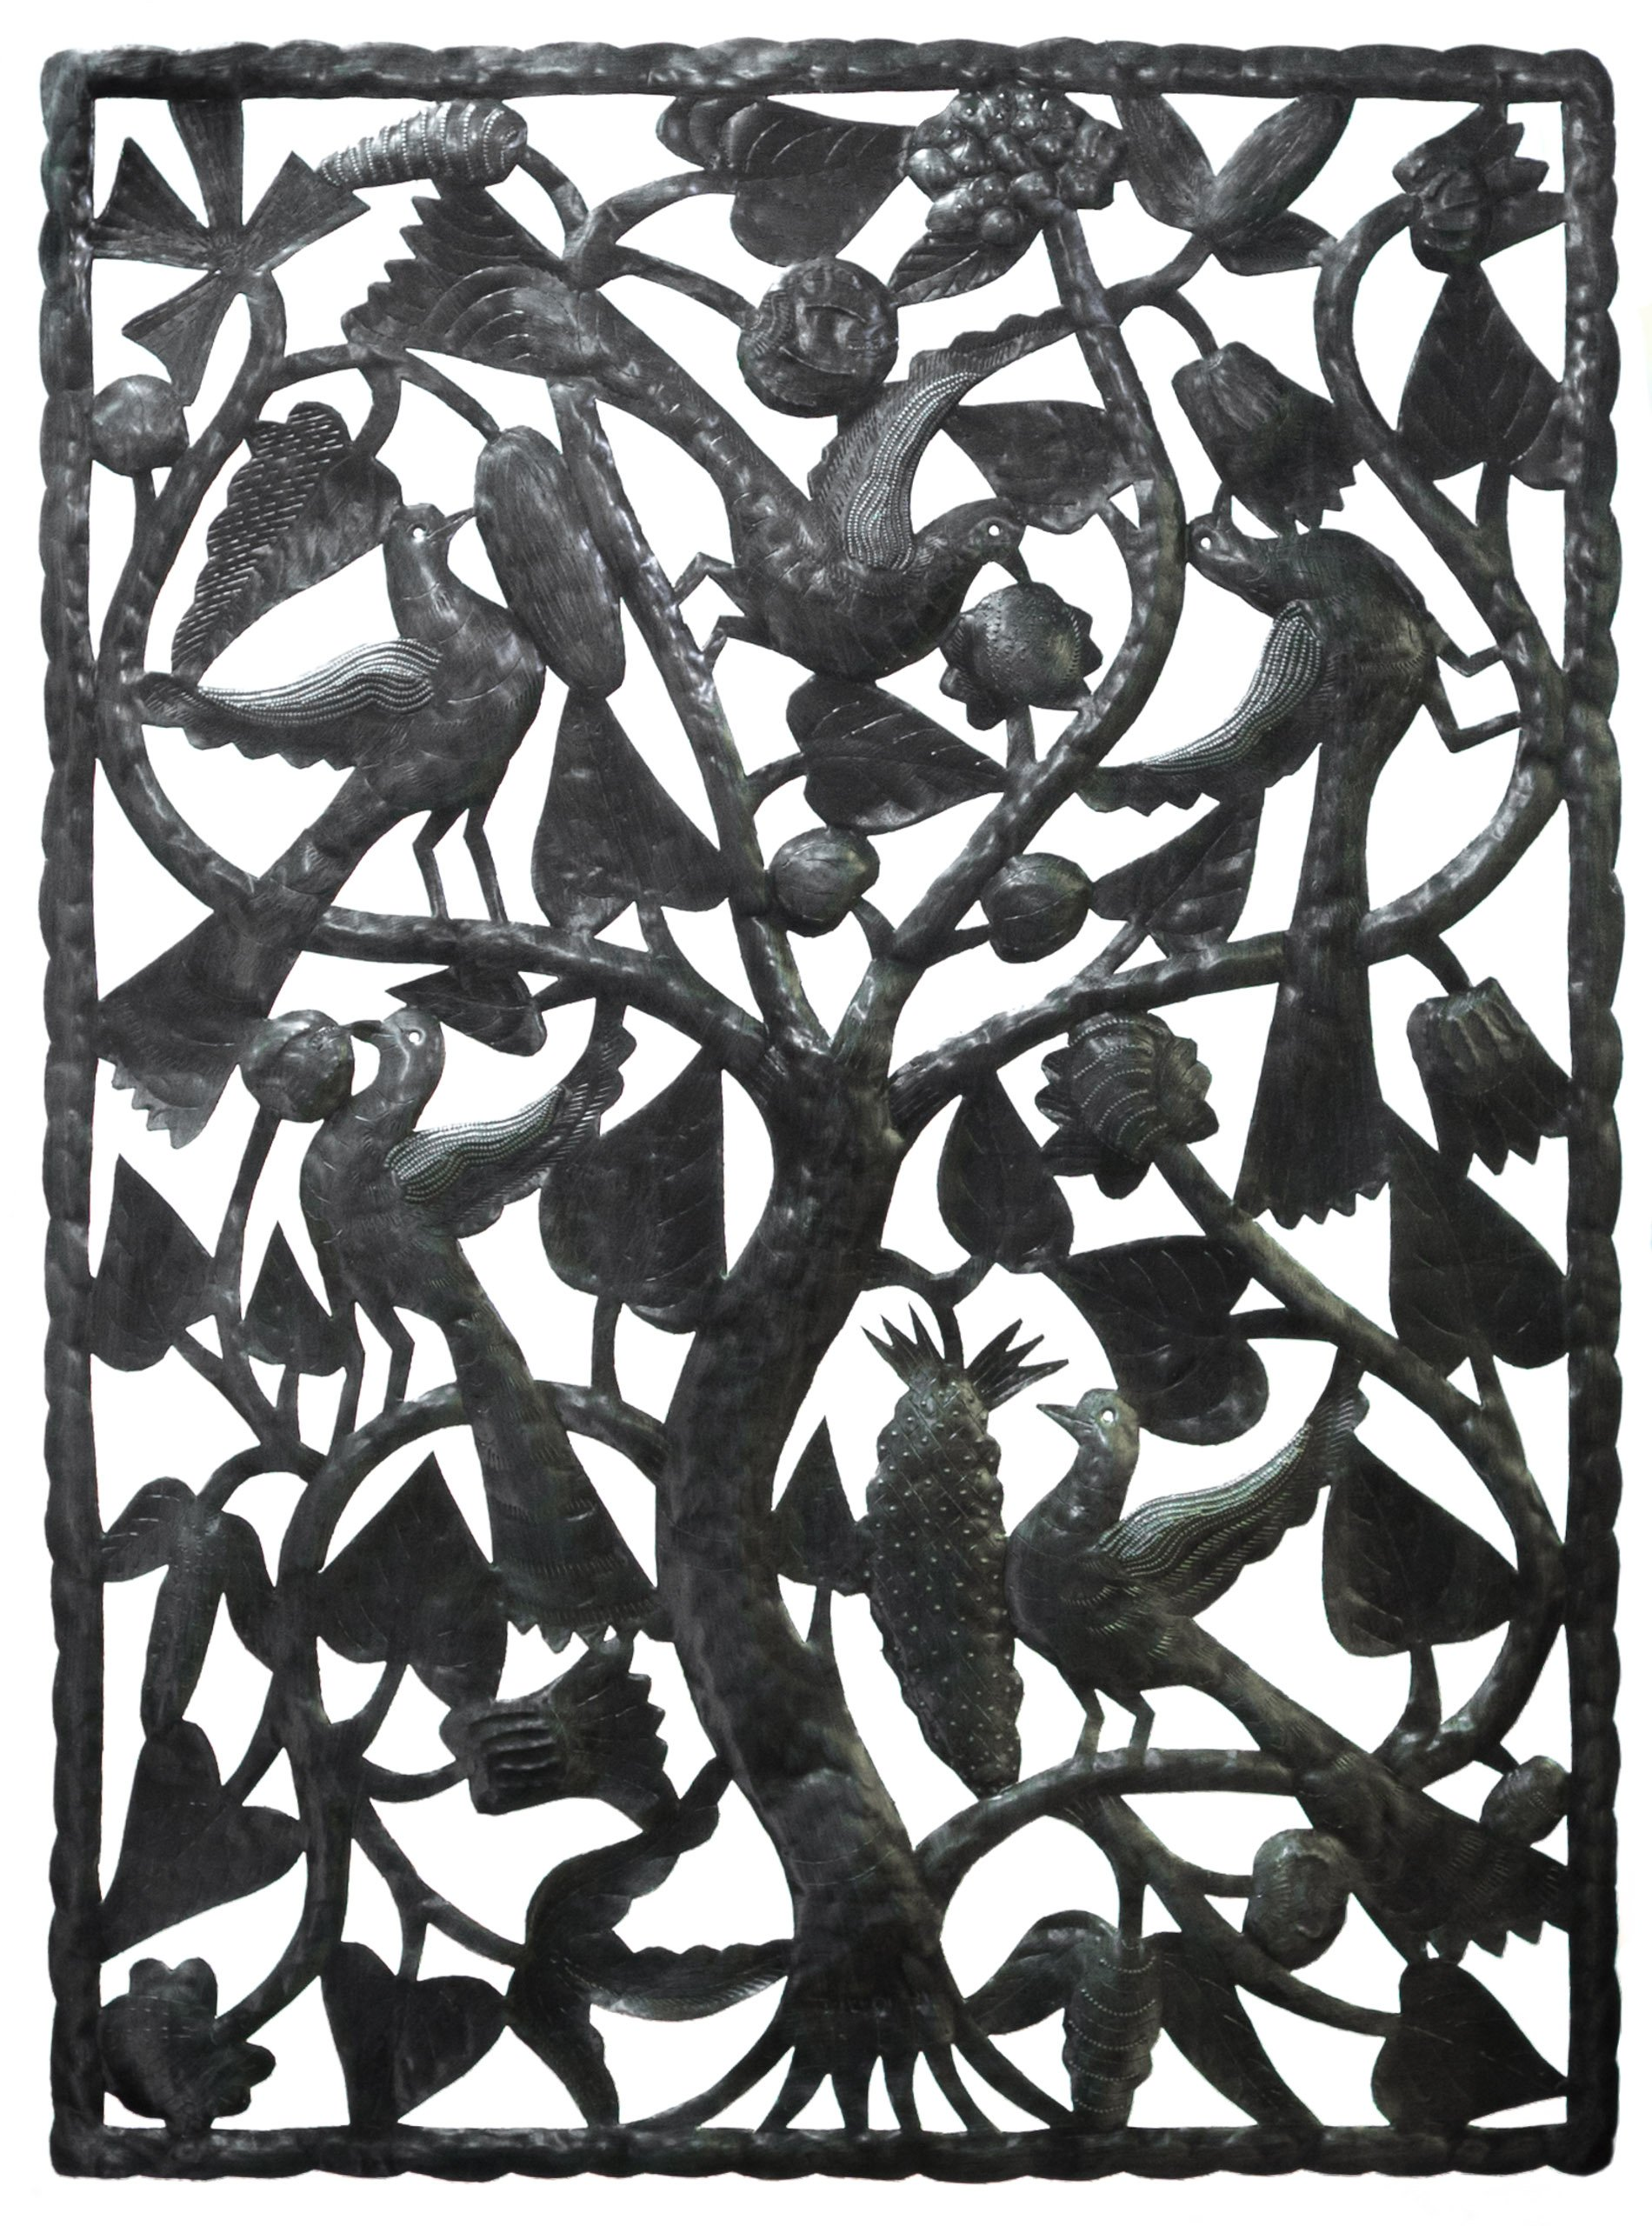 Le Primitif Galleries Haitian Recycled Steel Oil Drum Outdoor Decor, 47.5 by 35-Inch, Panel